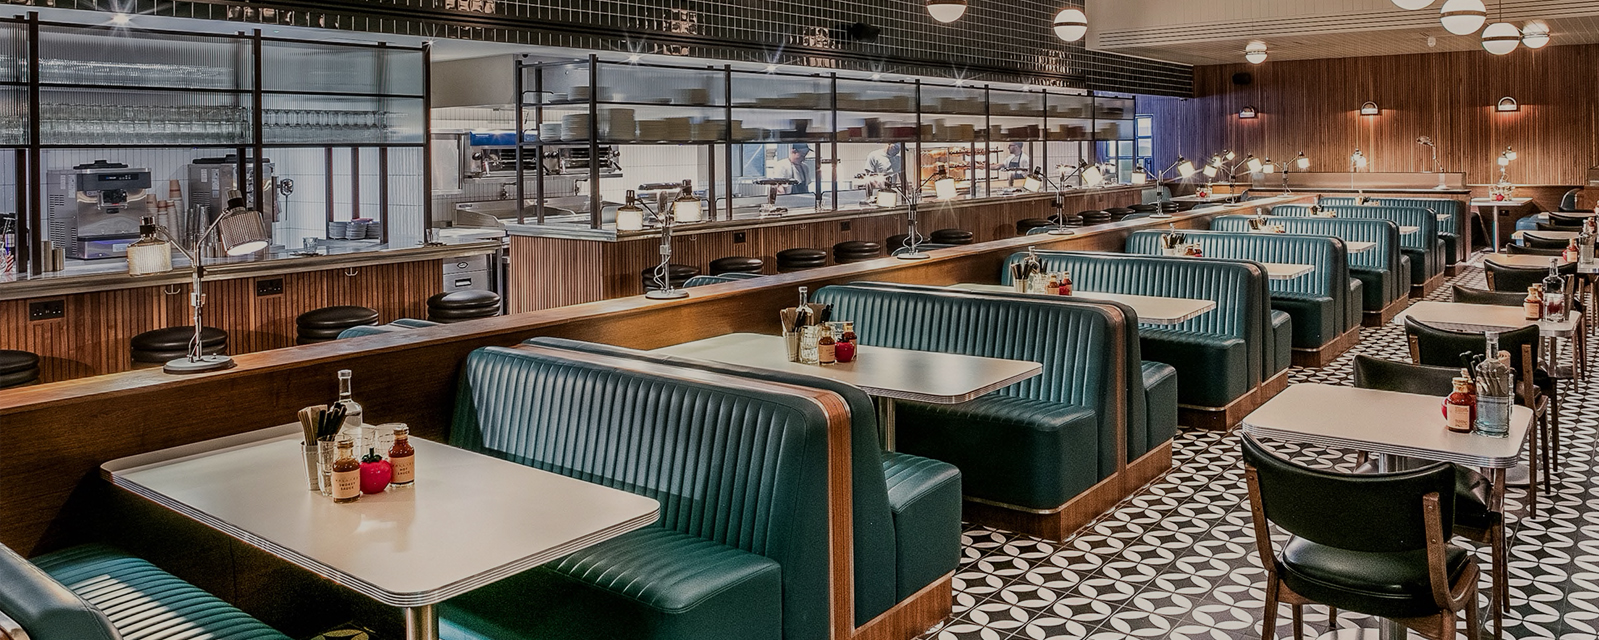 Nova Interiors Mollie's Motel & Diner Banquette Seating